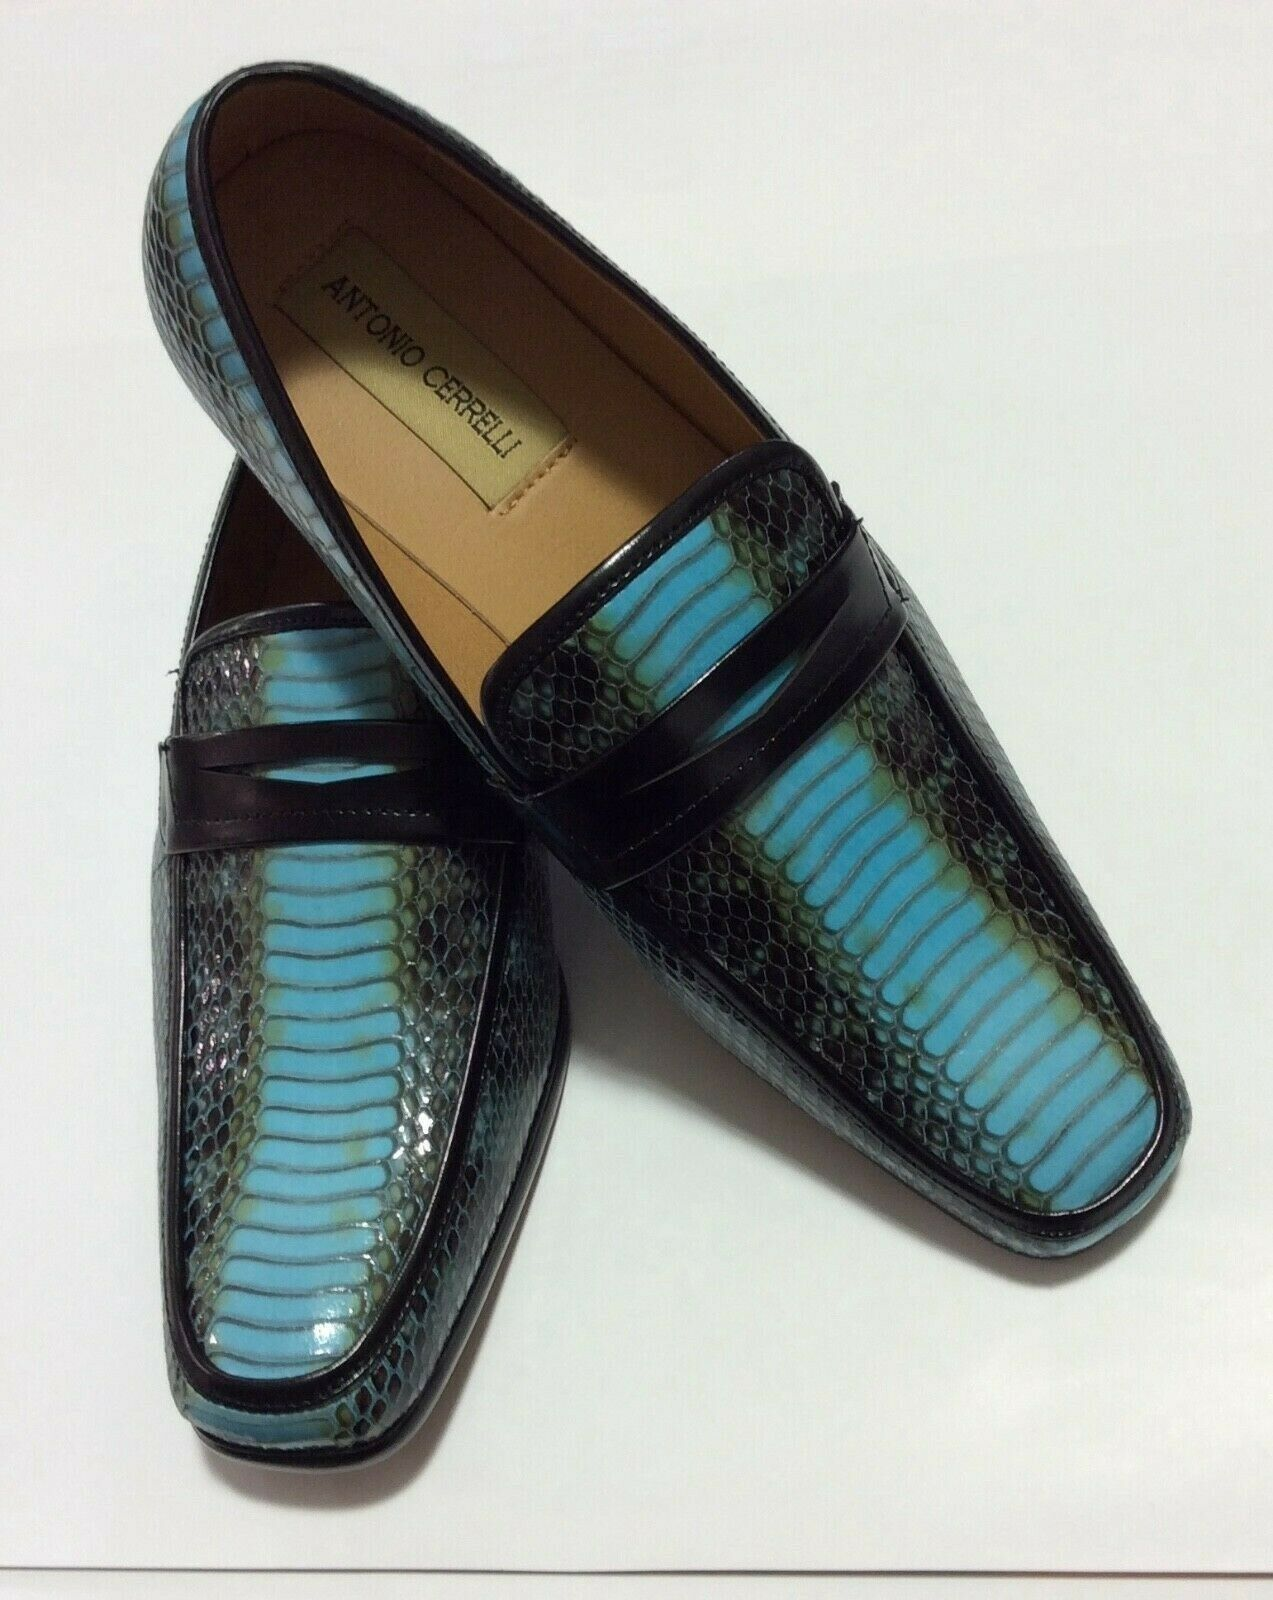 Mens Lt.bluee Elegant Exotic Snake Look Loafers shoes Antonio Cerrelli 6494 NEW